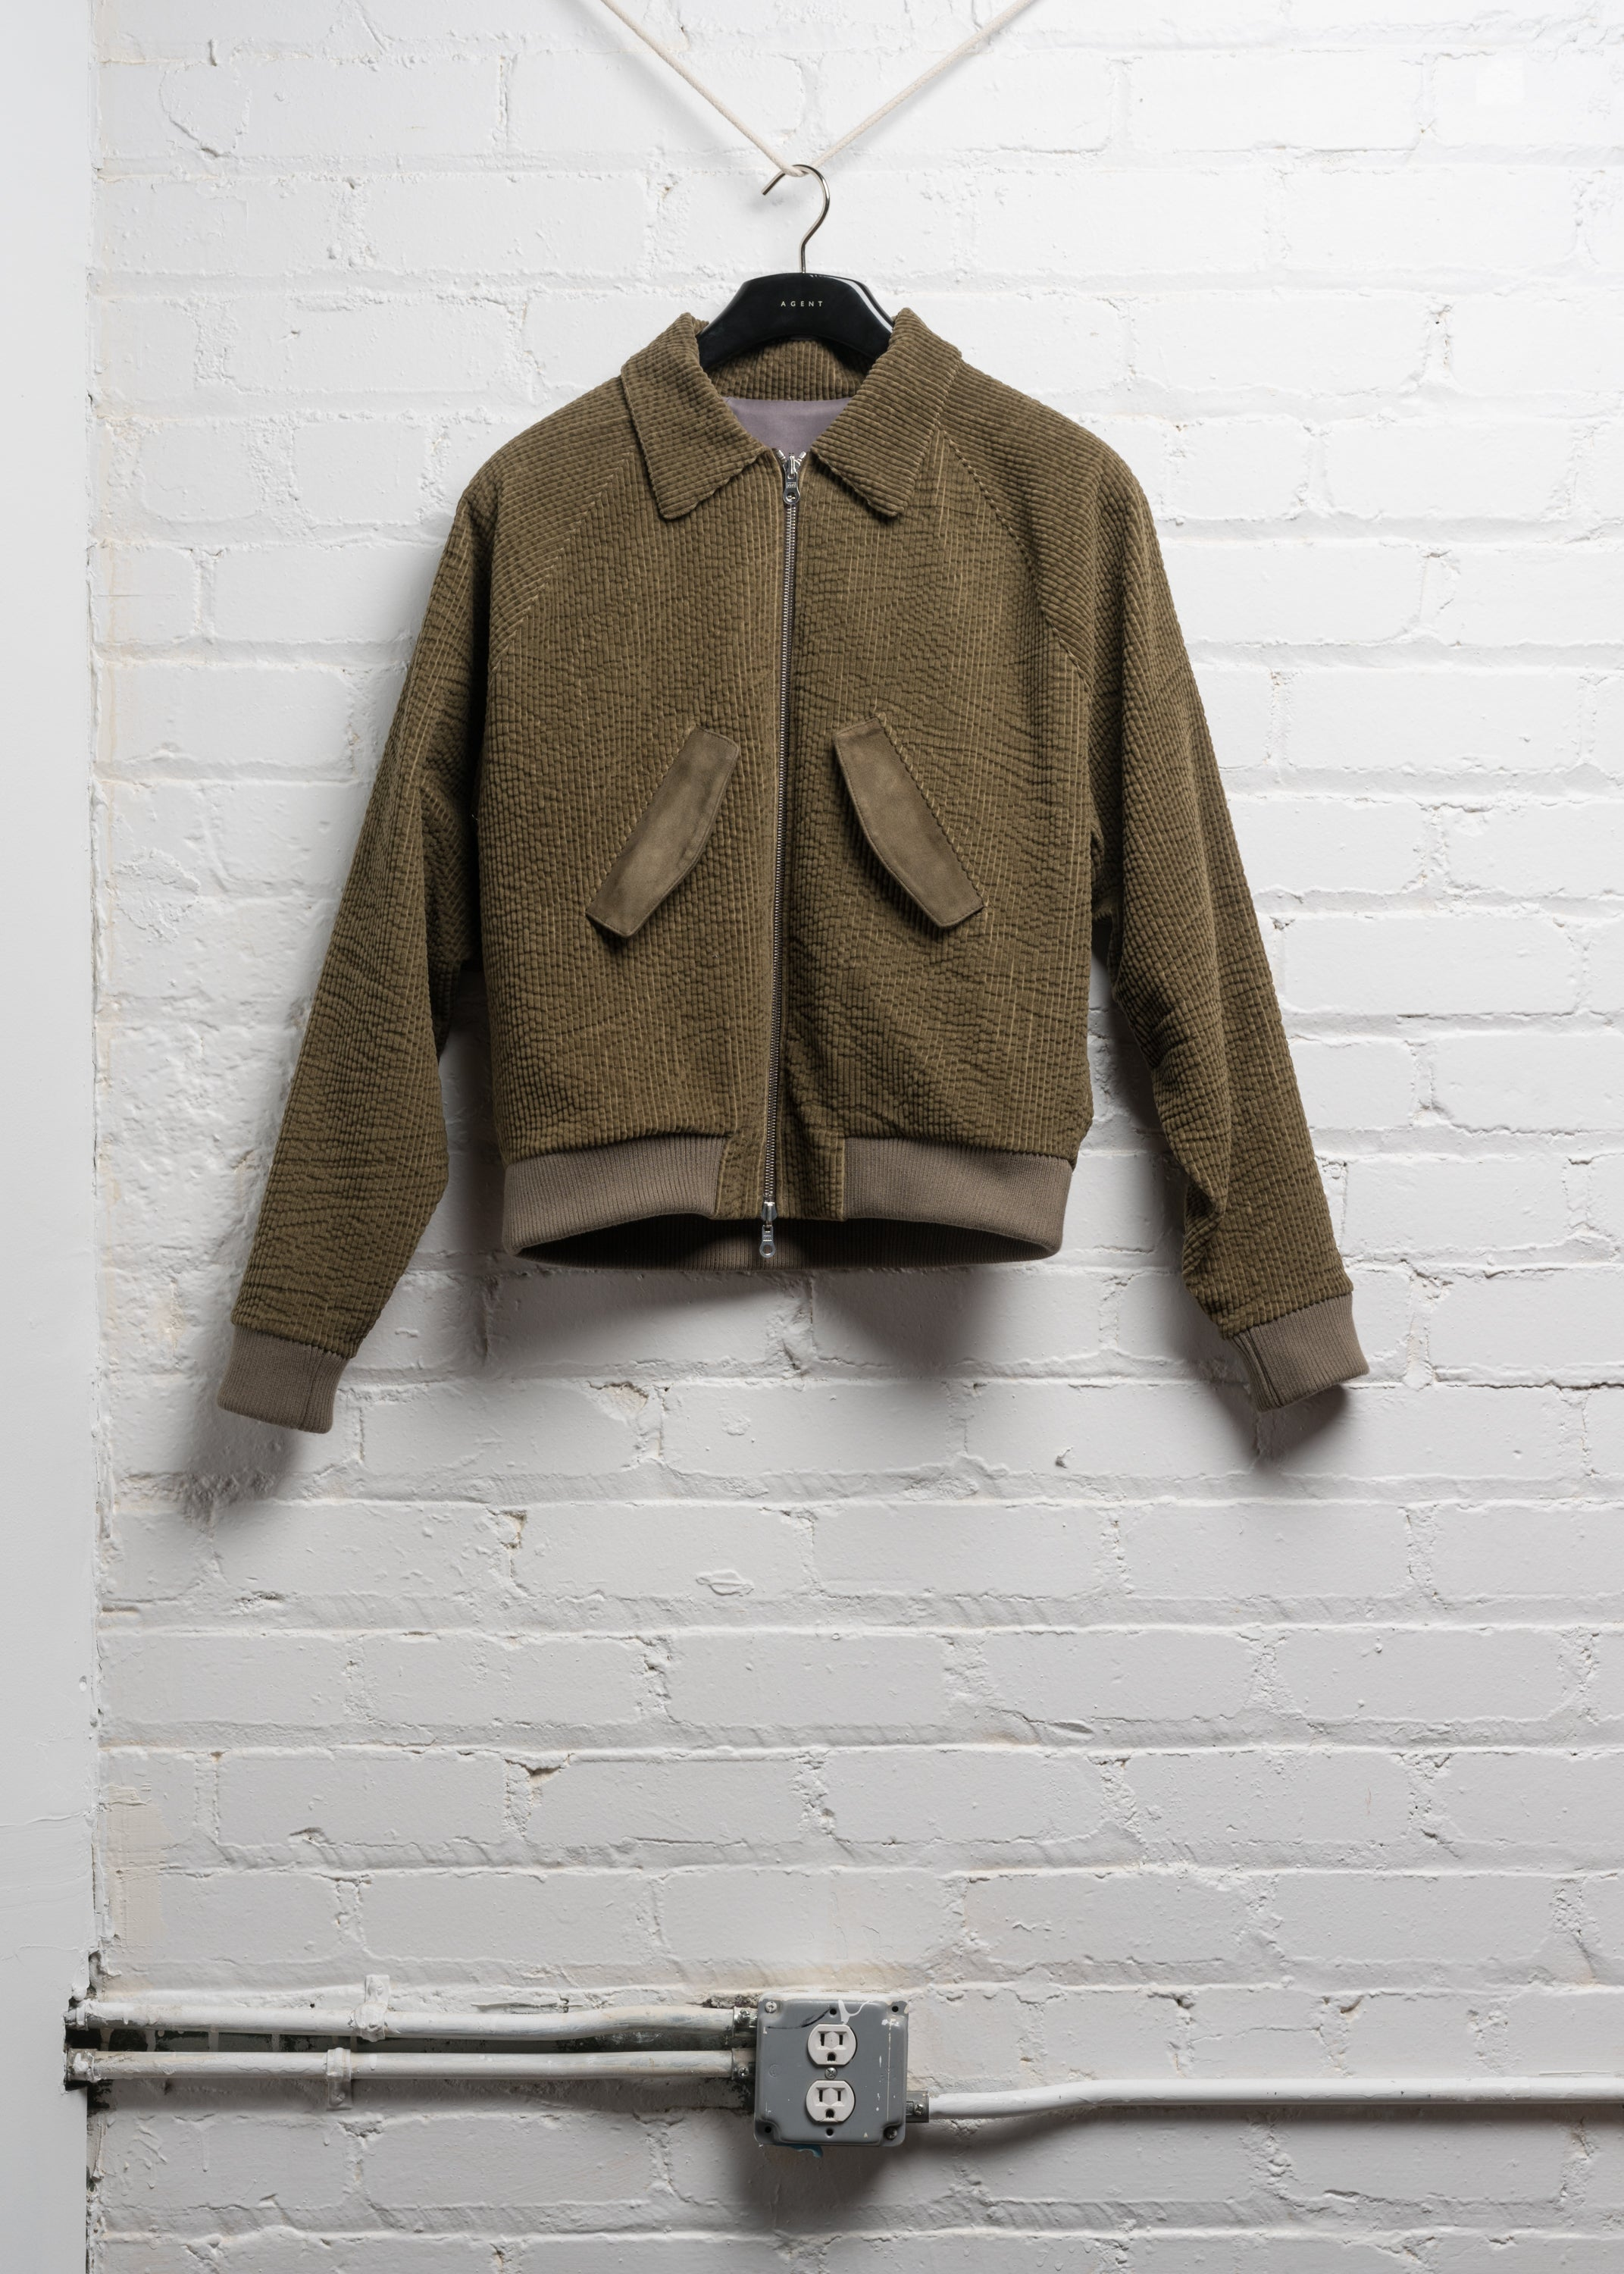 HARRINGTON JACKET IN JAPANESE KHAKI CORDUROY